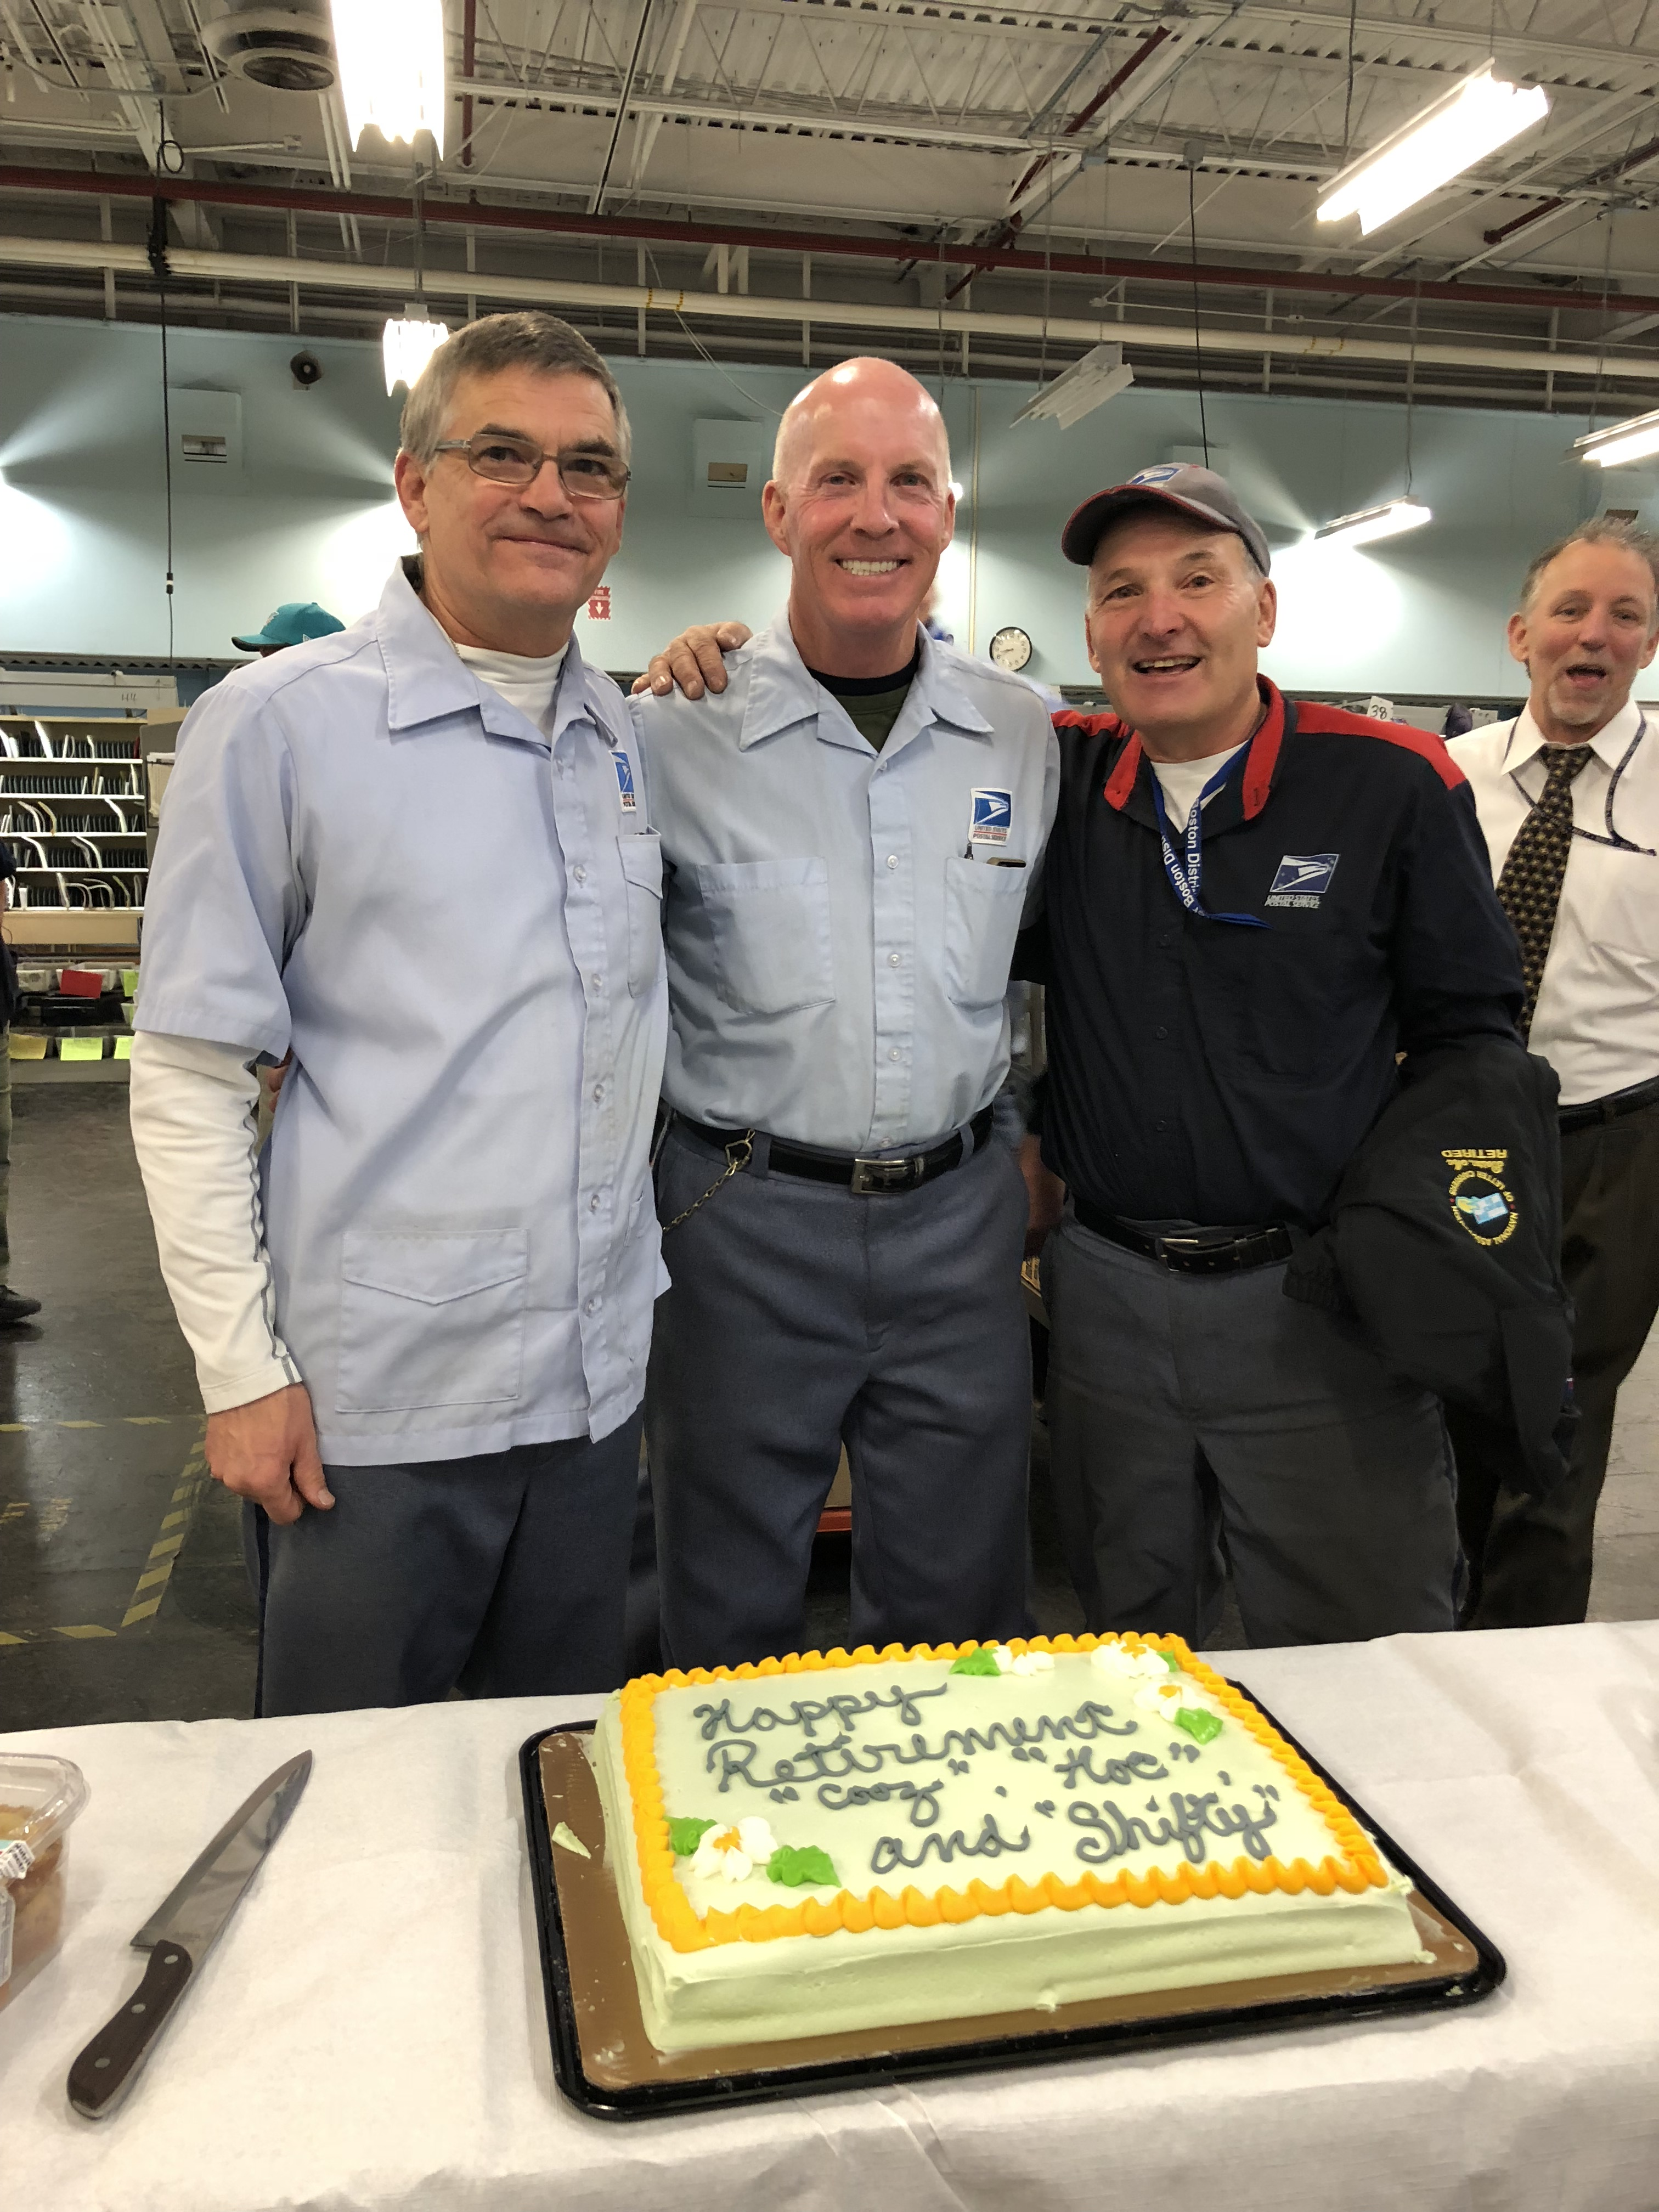 Bill Shea, Tom Hoctor and Bob Cusolito pose with their retirement cake.